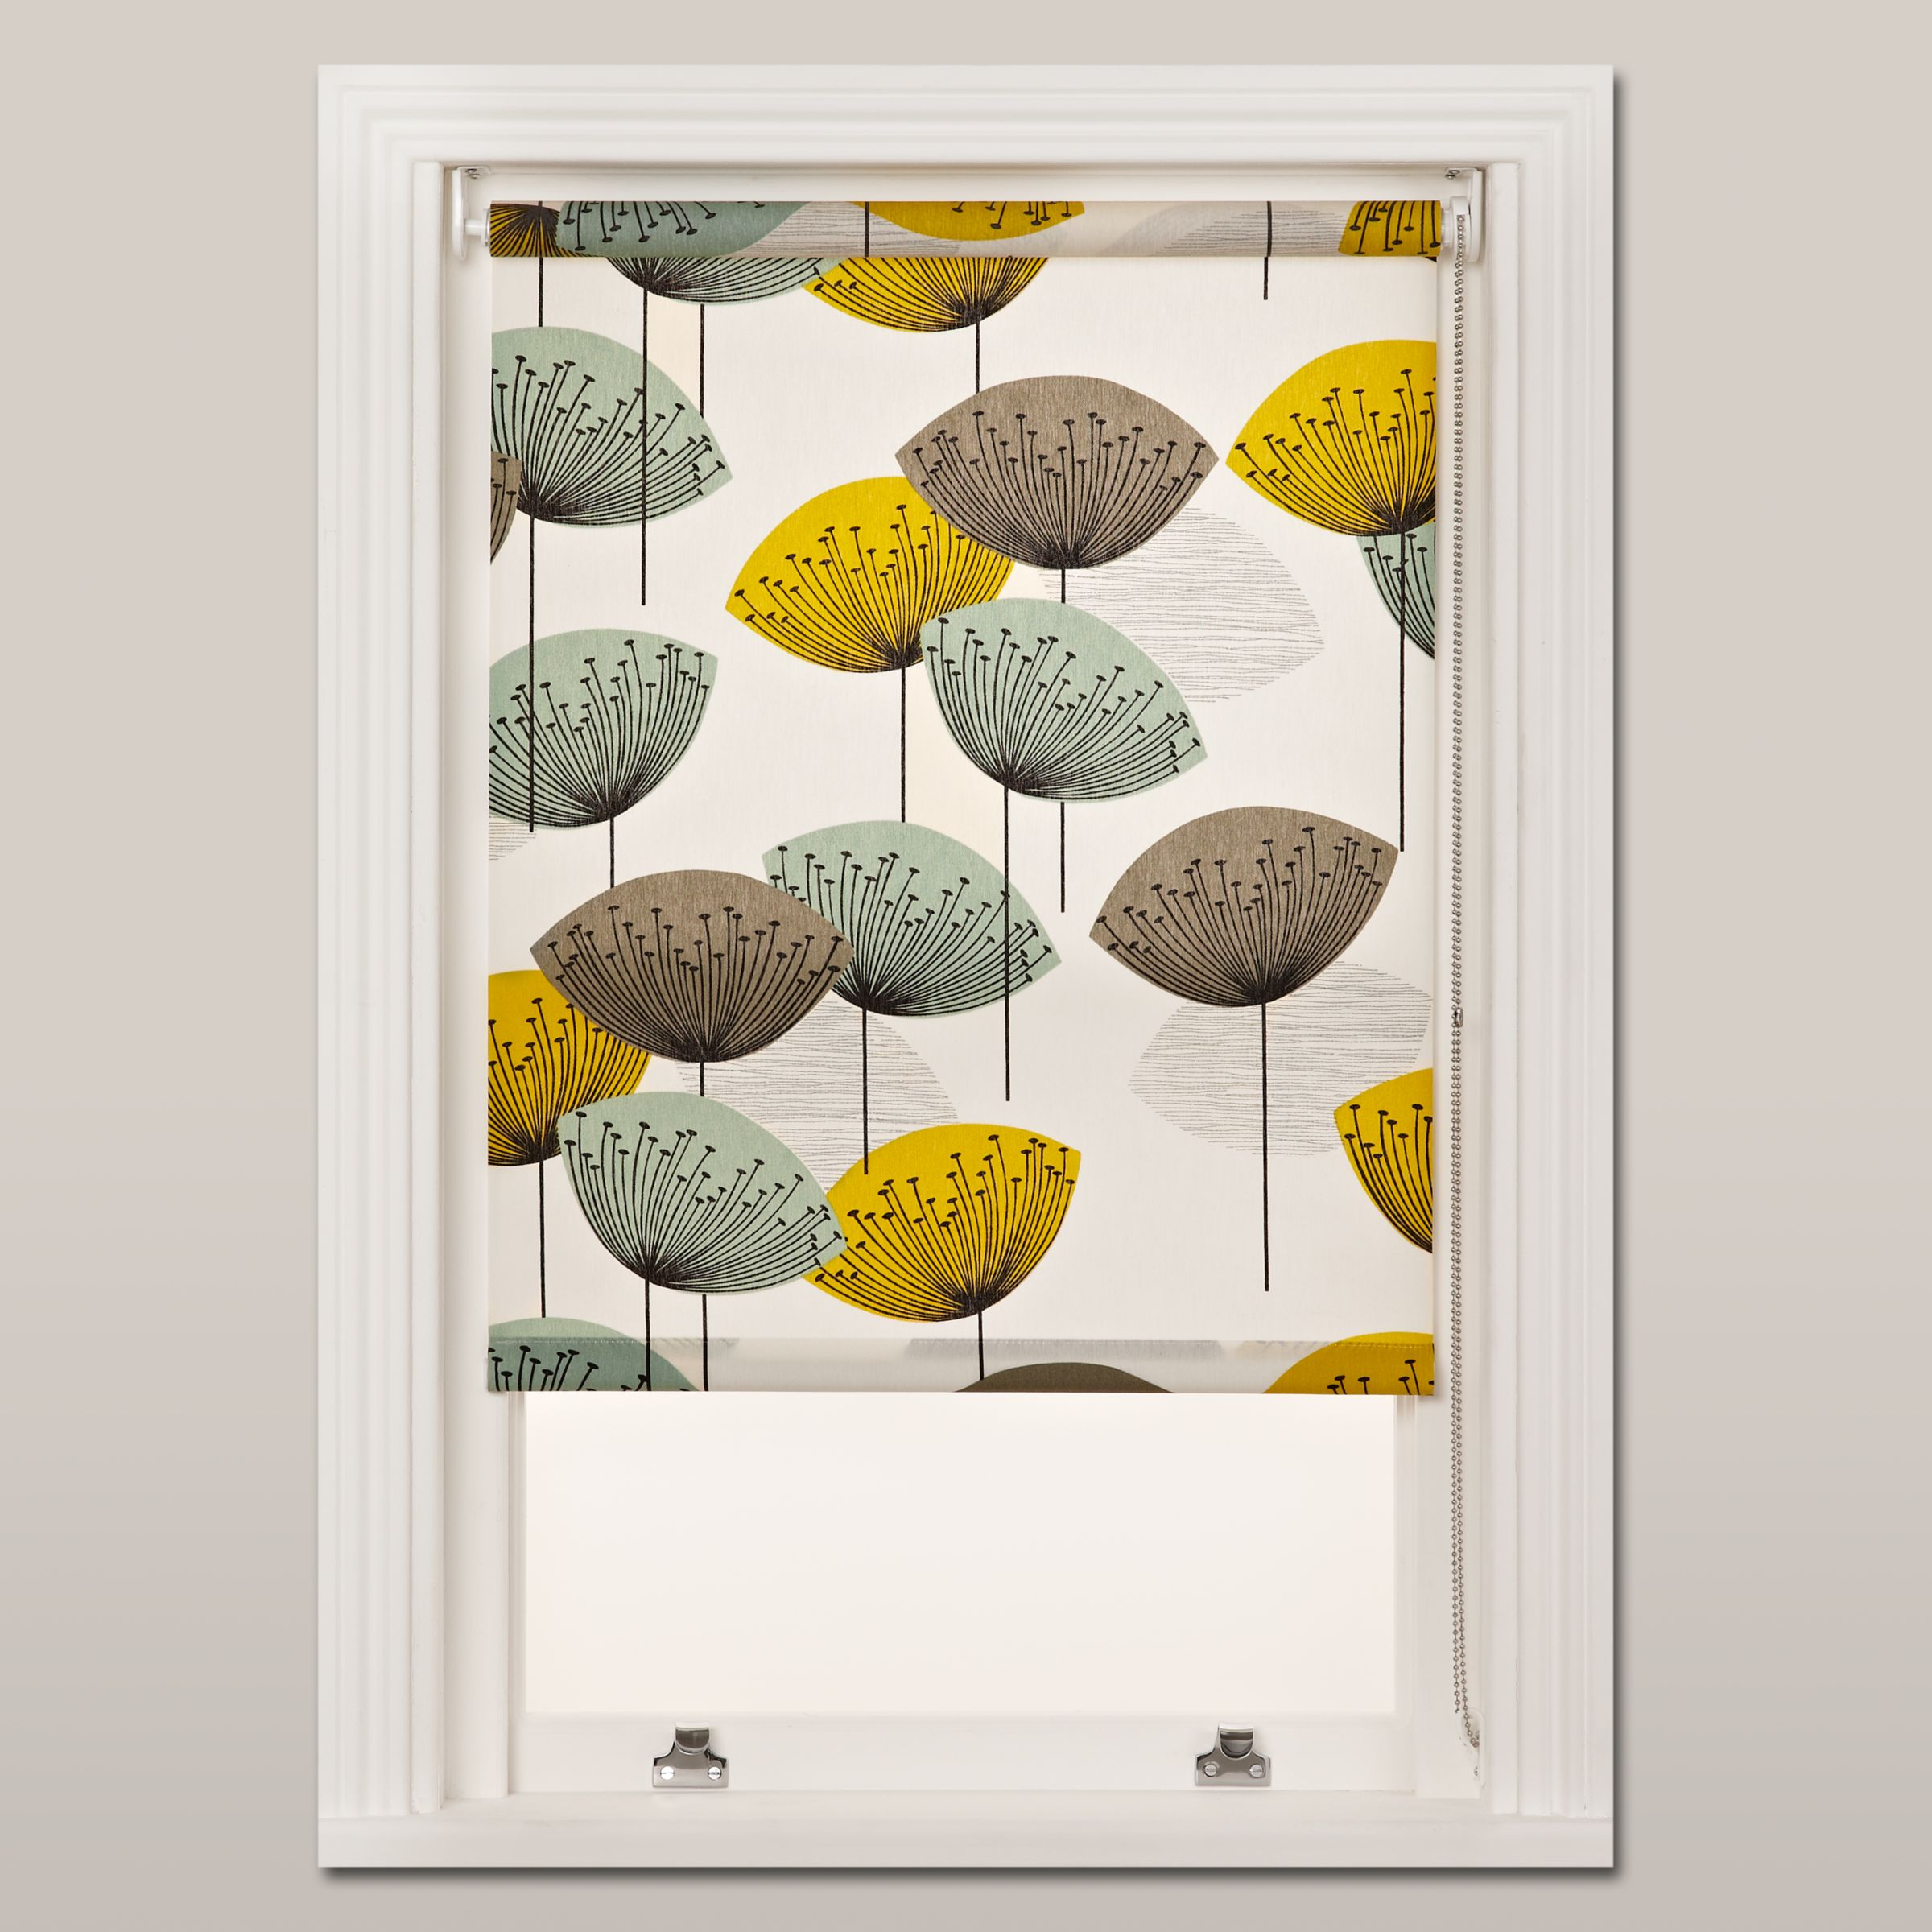 Cheap bathroom blinds uk - Buy Sanderson Dandelion Clocks Roller Blind Chaffinch Online At Johnlewis Com